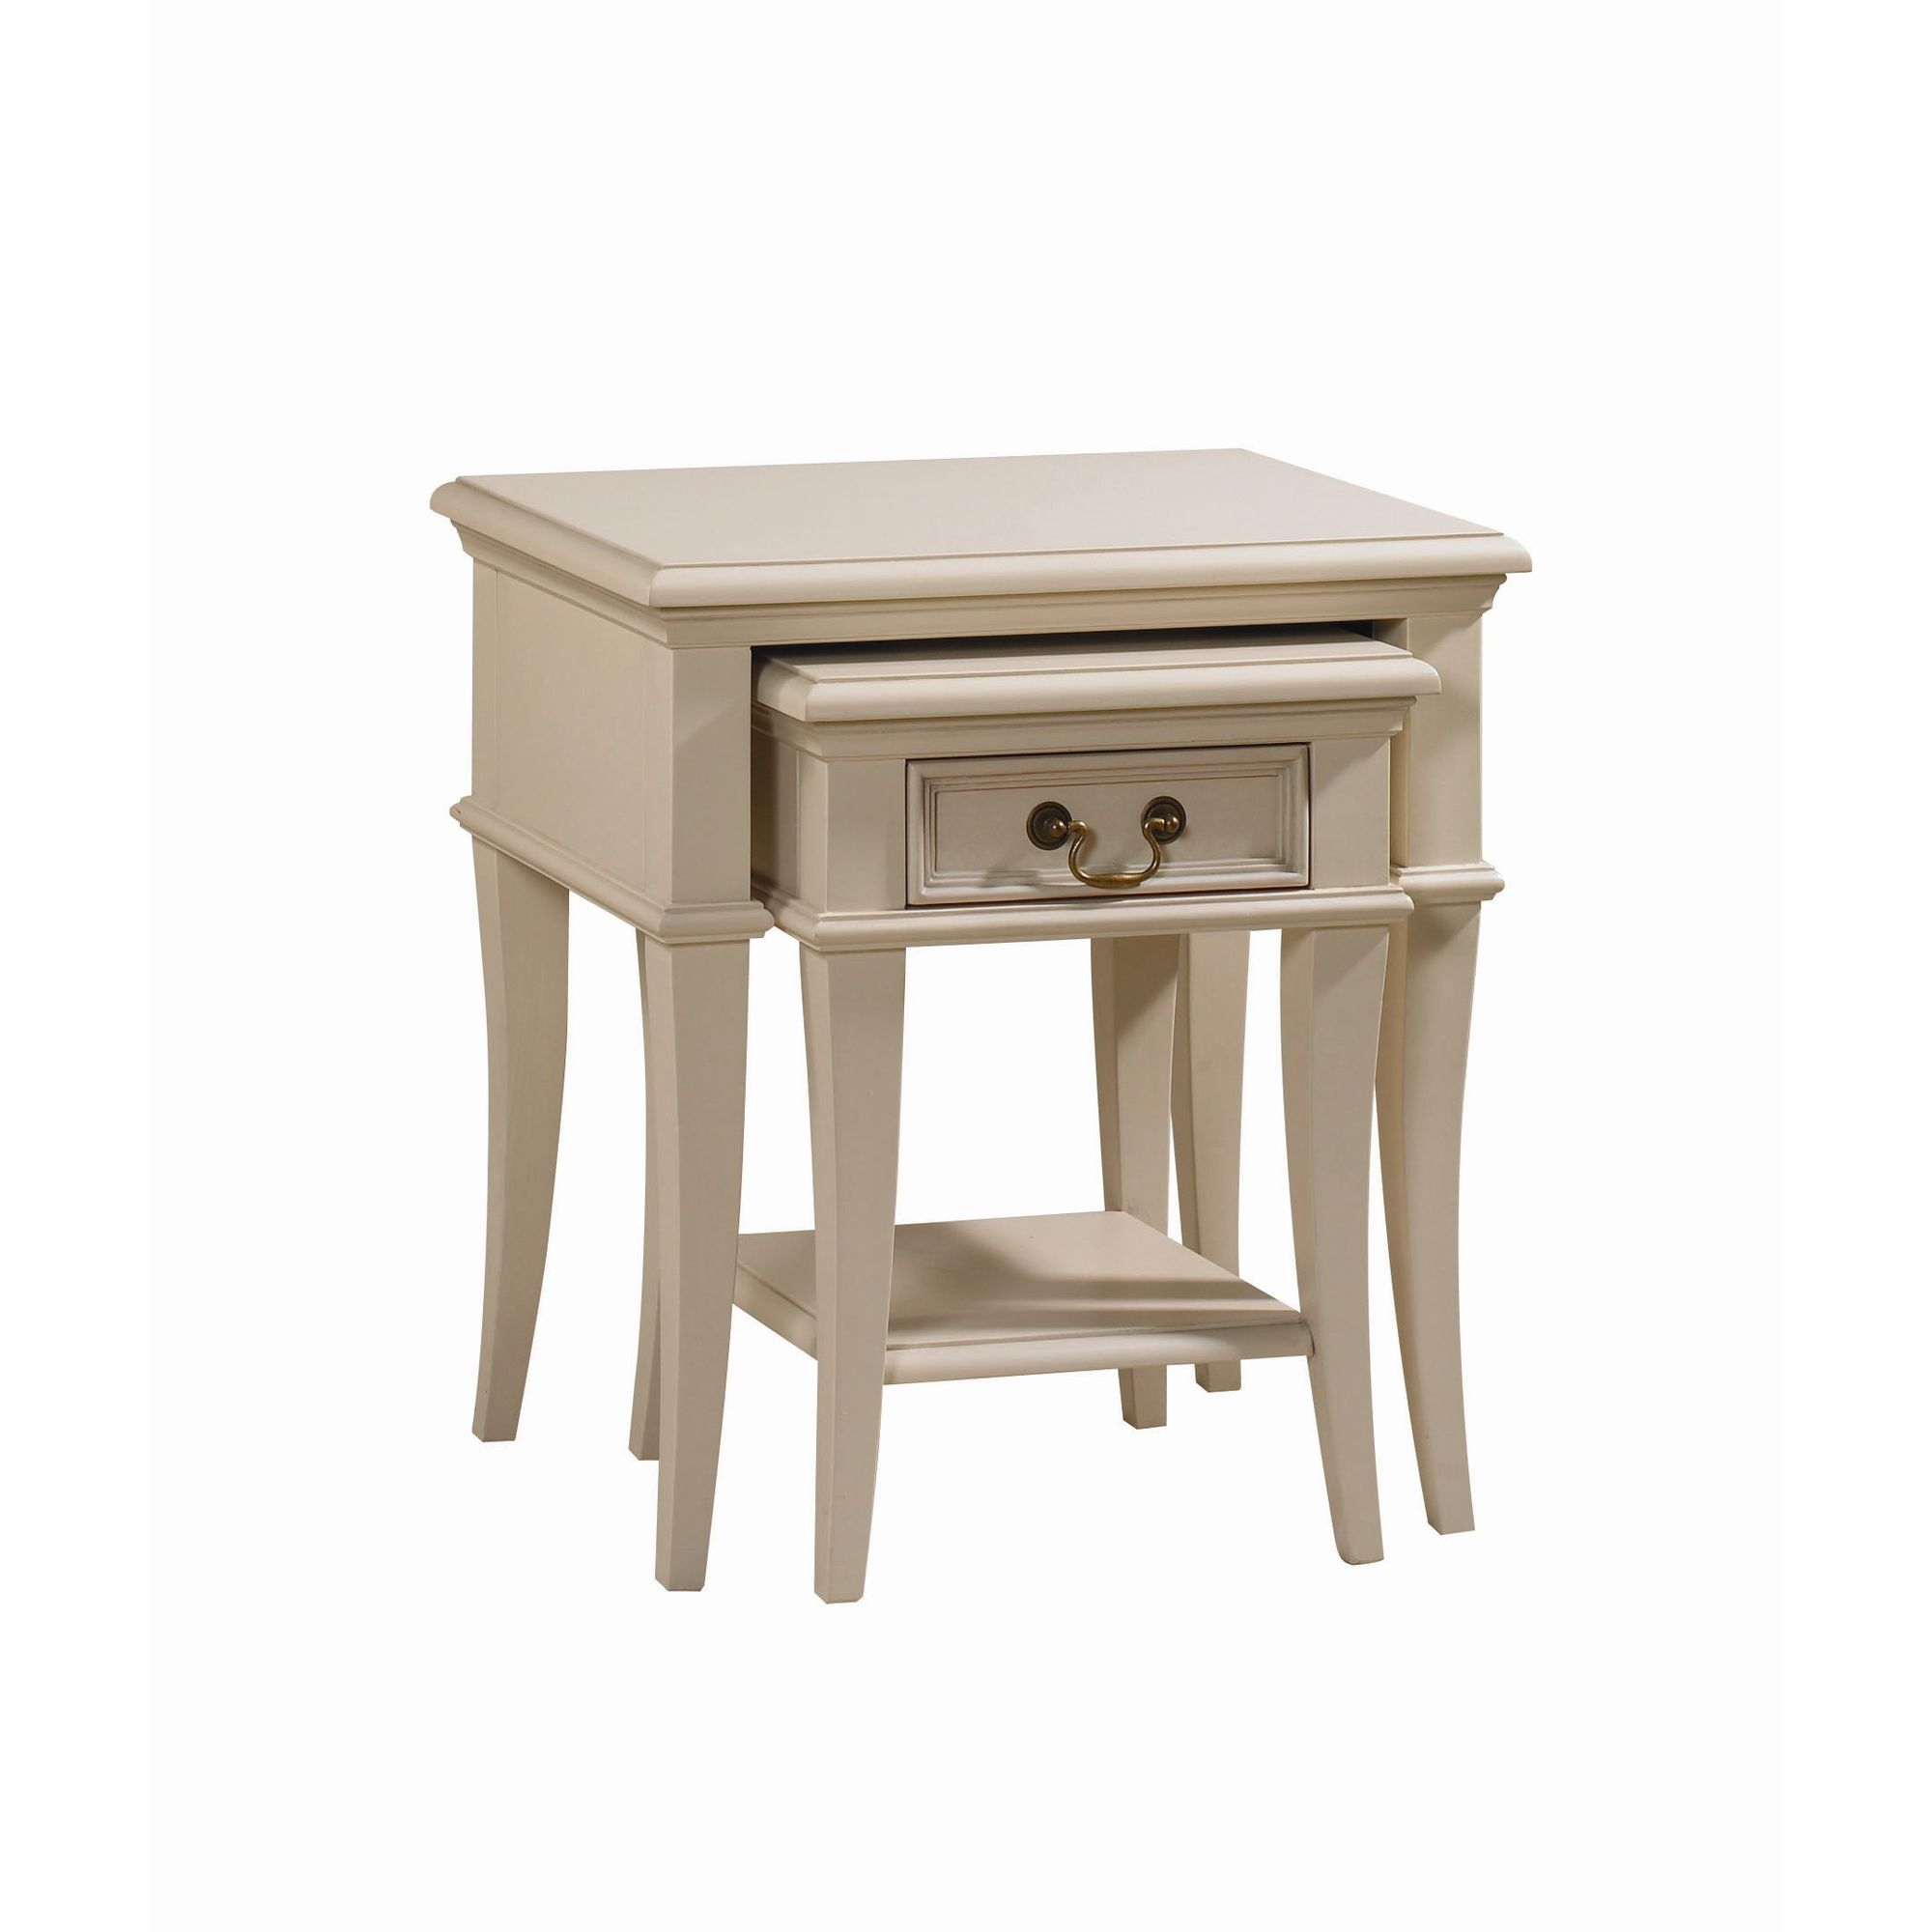 YP Furniture Country House Nest of Two Tables - Oak Top and Ivory at Tesco Direct